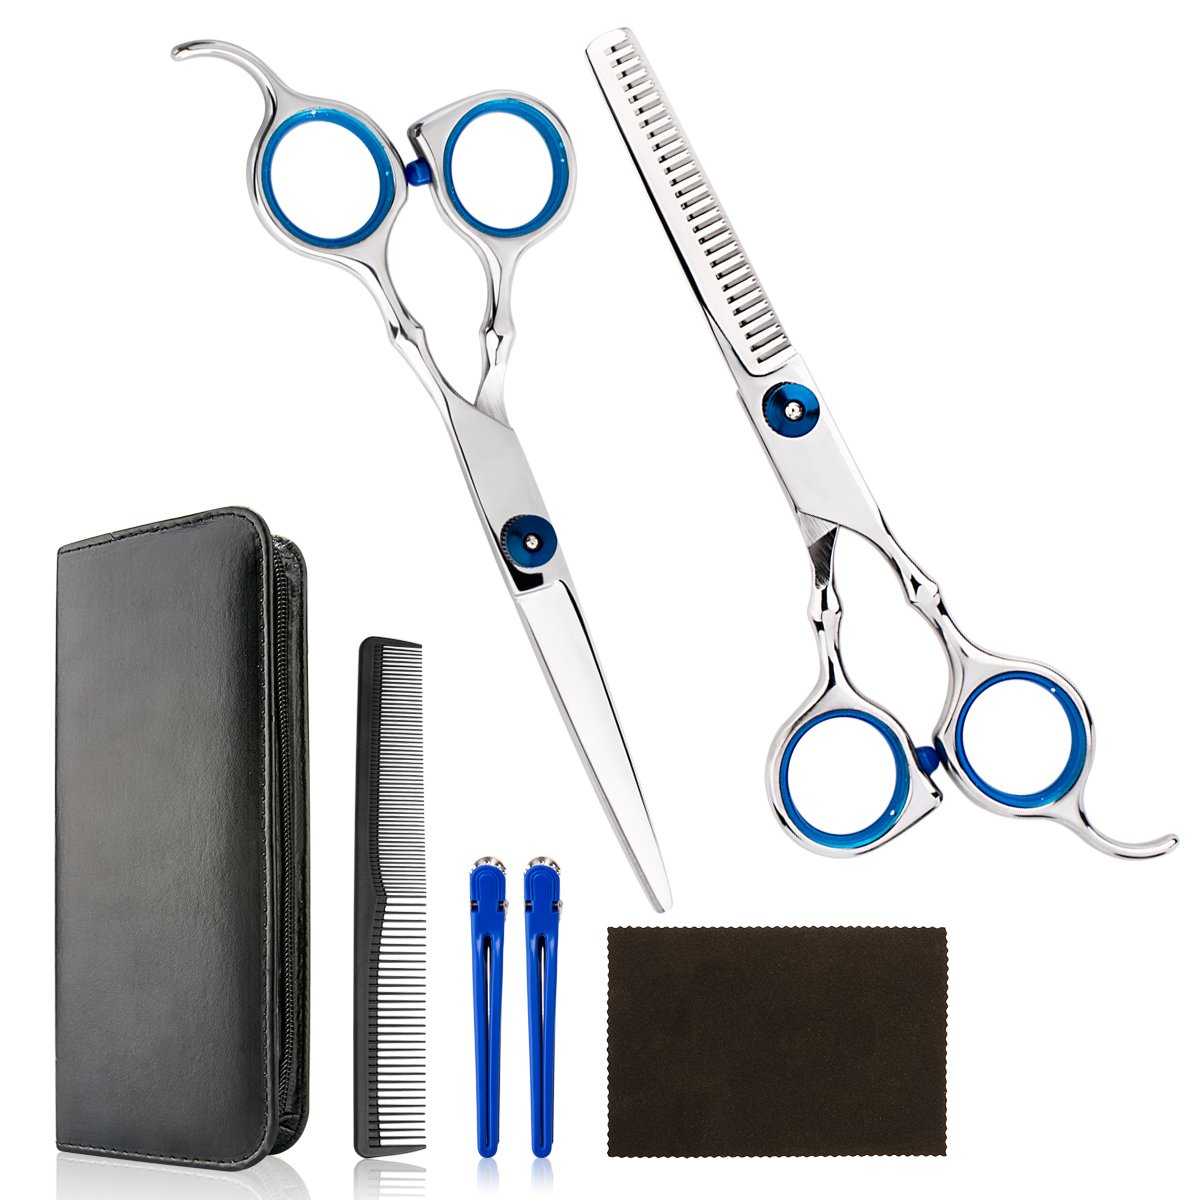 Professional Home Hair Cutting Kit - Quality Home Haircutting Scissors Barber/Salon/Home Thinning Shears Kit with Comb and Case for Men and Women by Himart